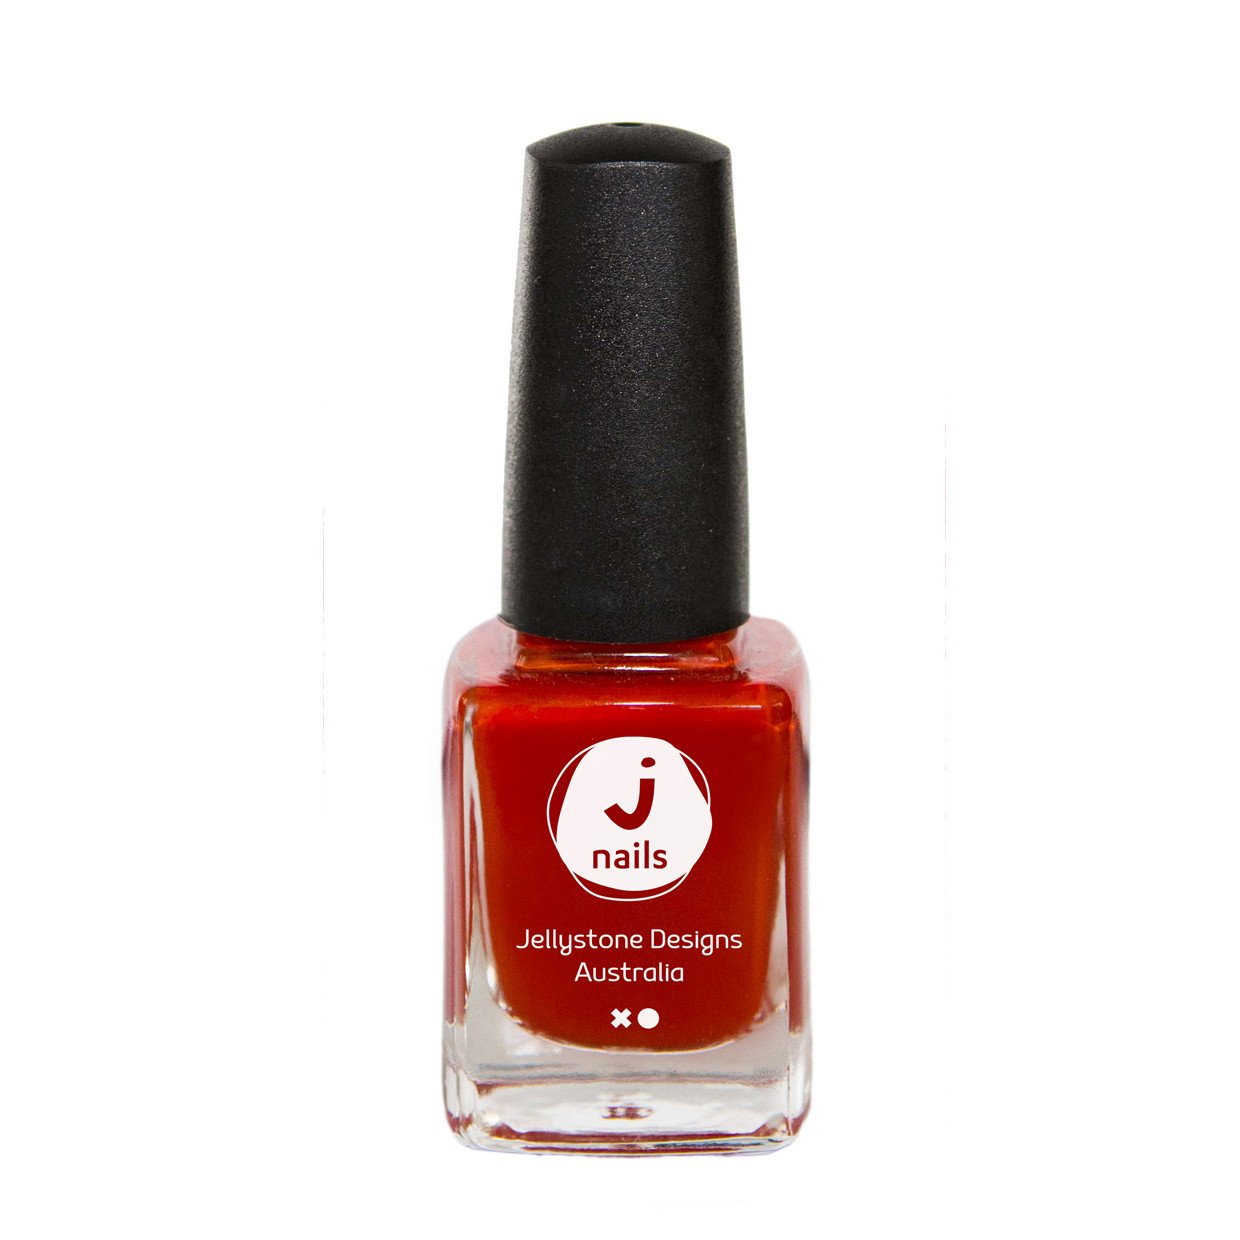 Jellystone 7 Free Nail Polish Jellystone Designs Beauty Lionfish at Little Earth Nest Eco Shop